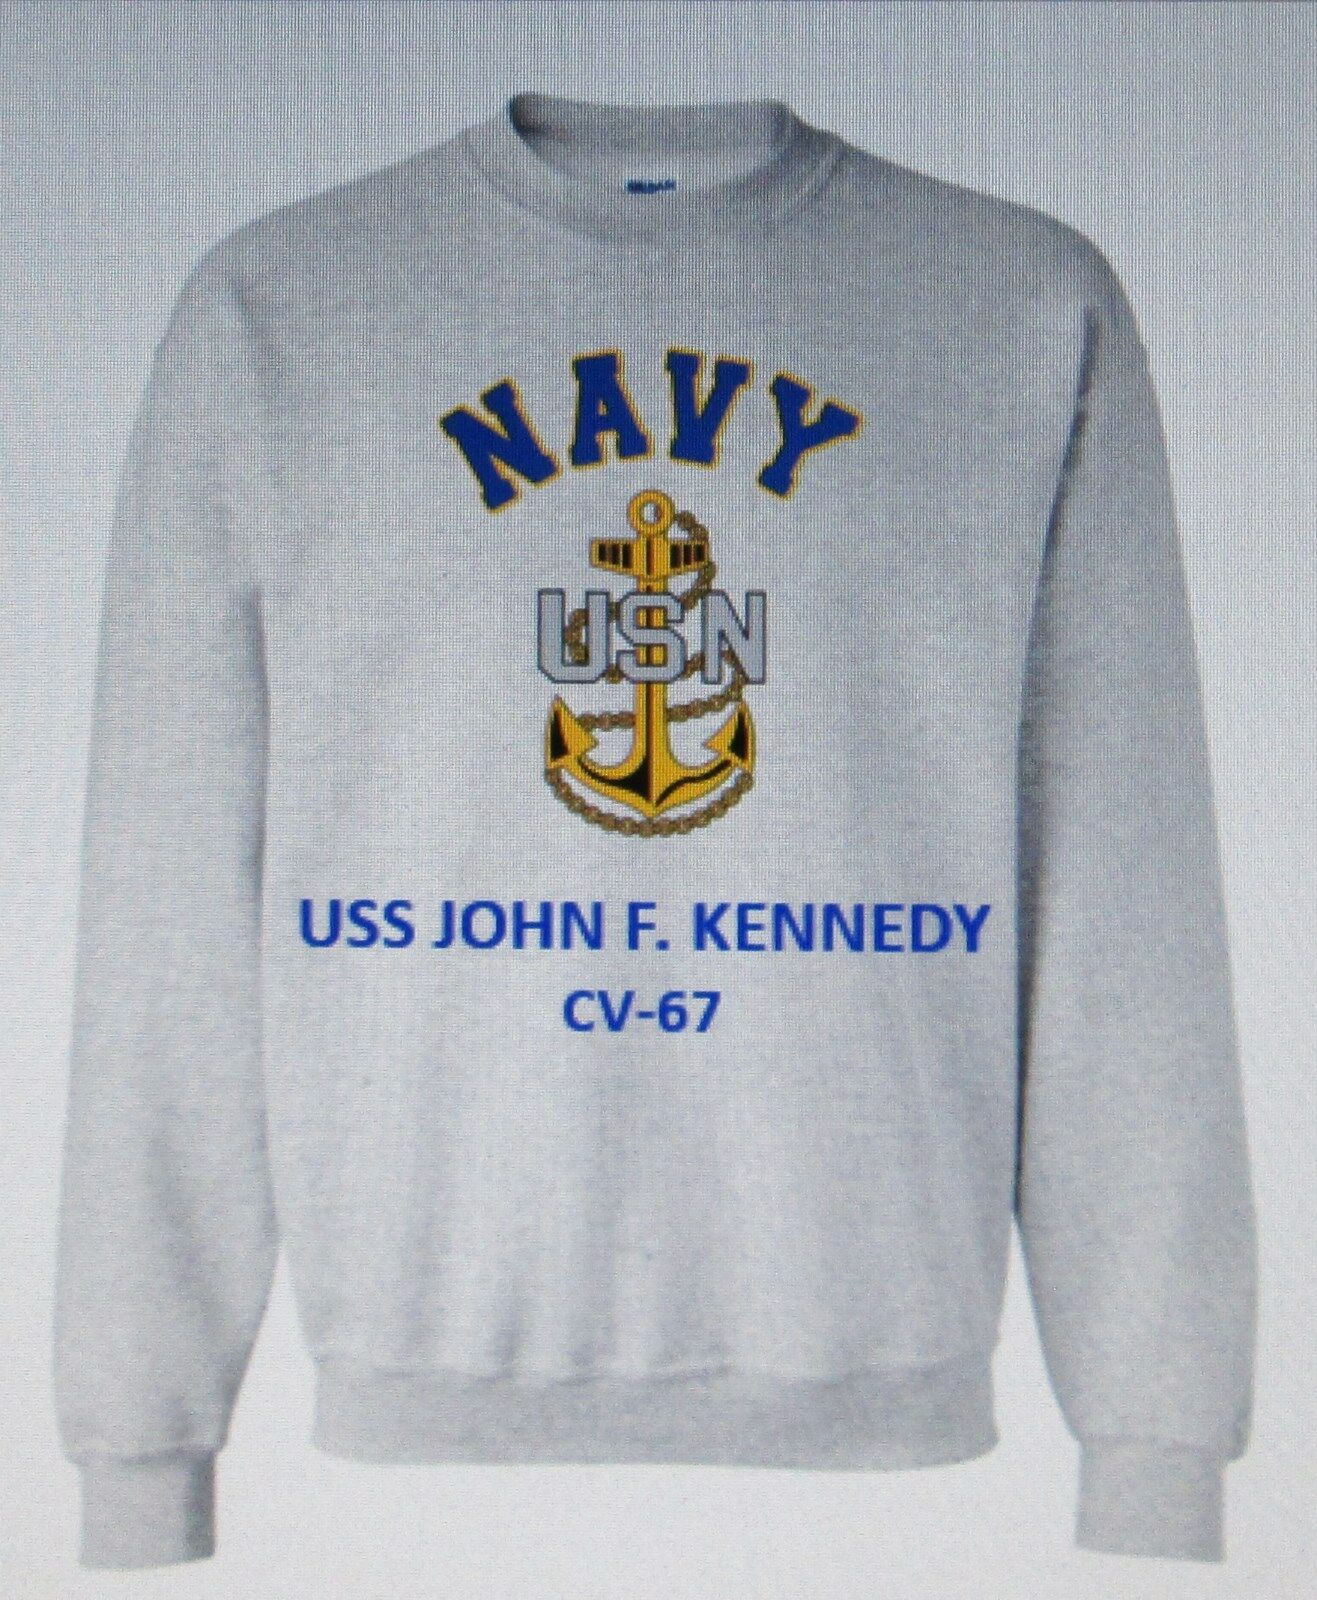 USS JOHN F. KENNEDY  CV-67 AIRCRAFT CARRIER NAVY ANCHOR EMBLEM SWEATSHIRT